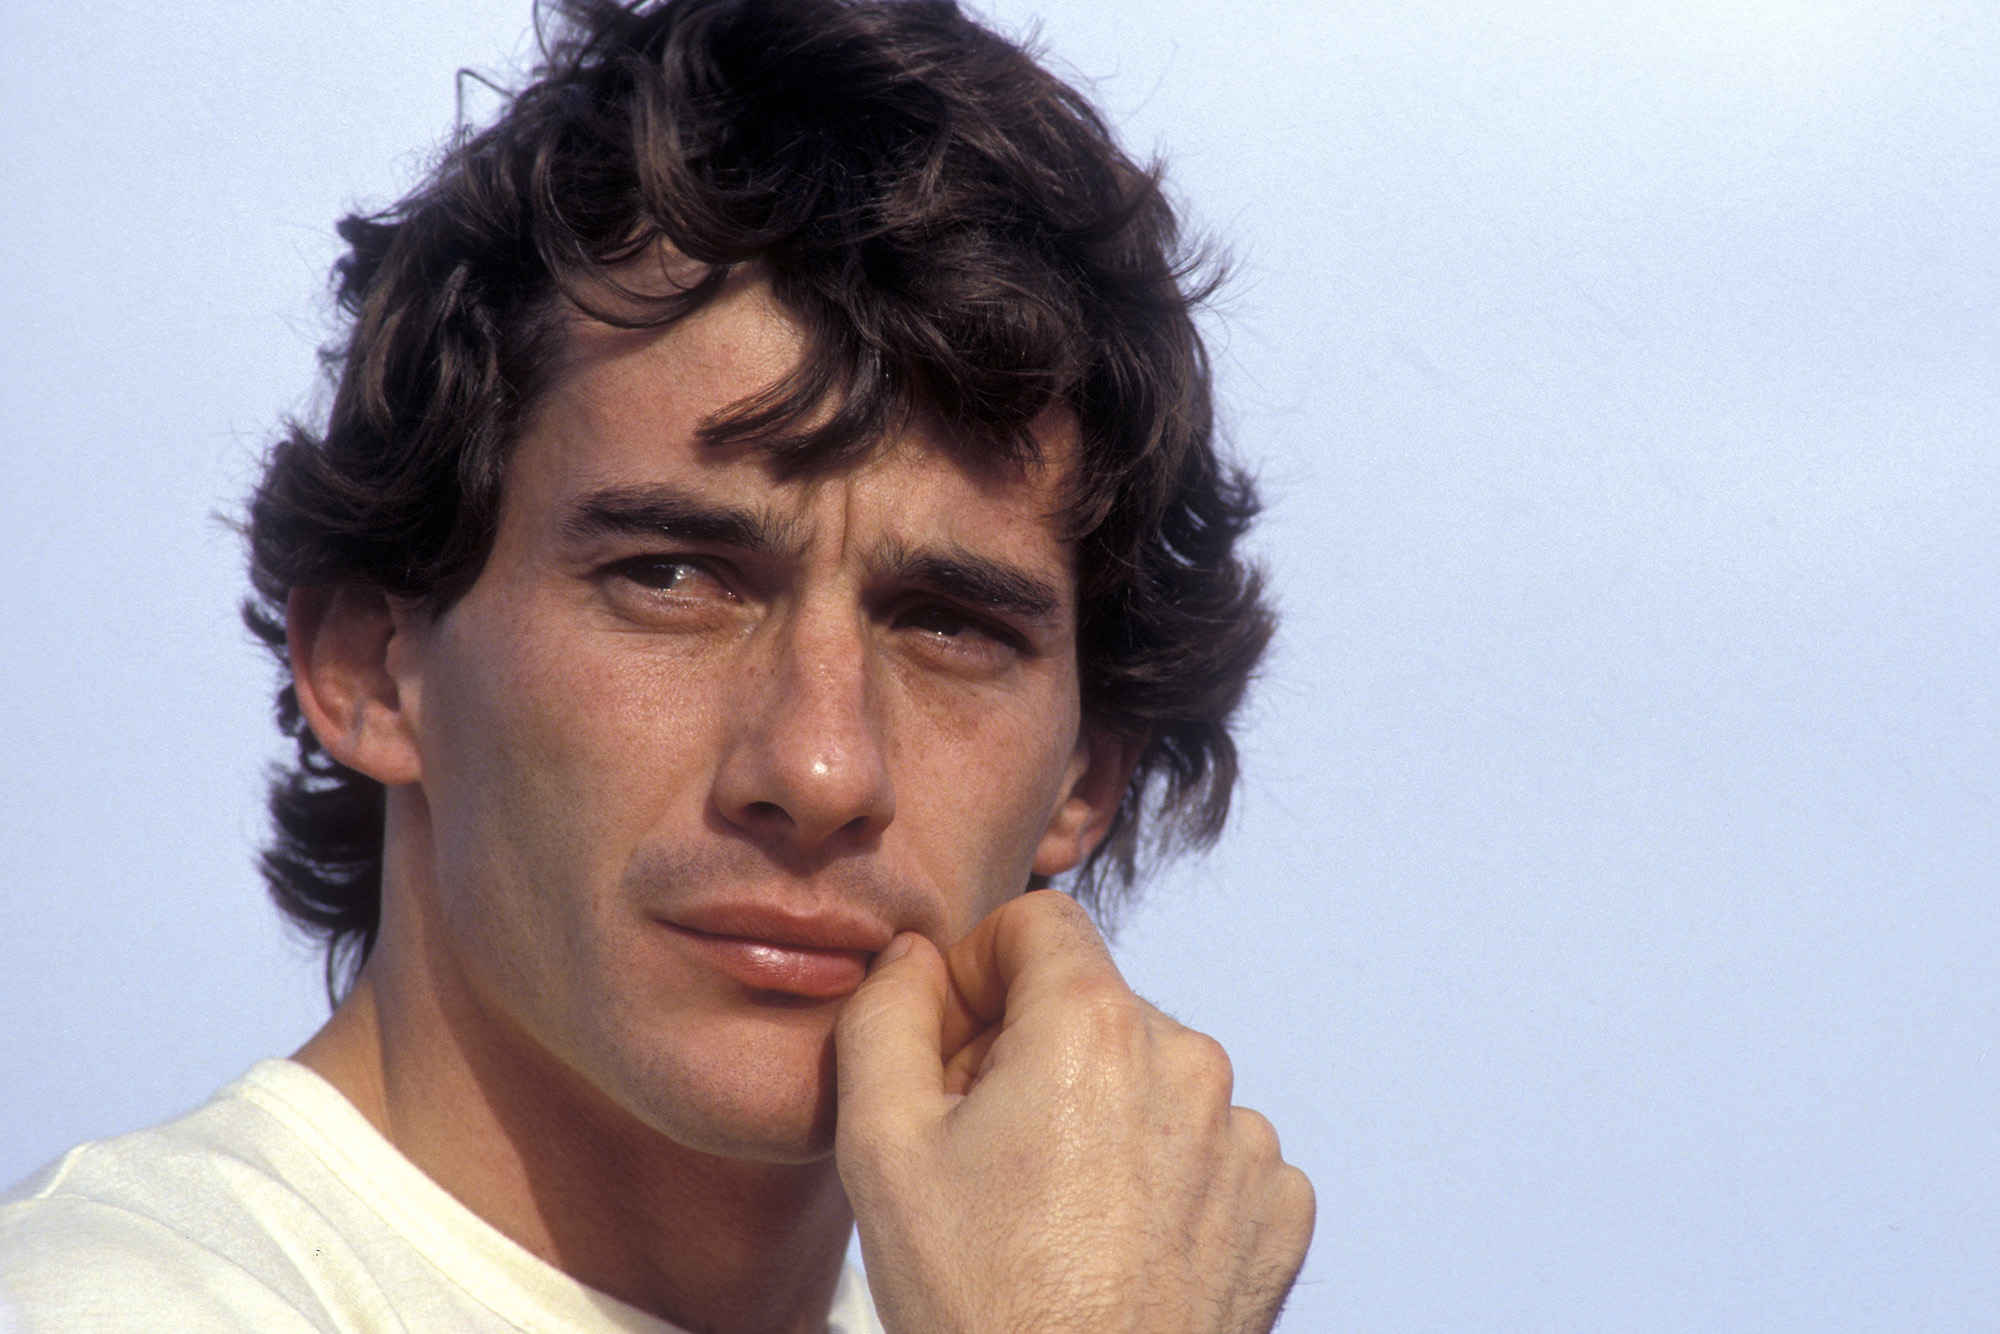 Portrait of Ayrton Senna at the 1990 Spanish Grand Prix